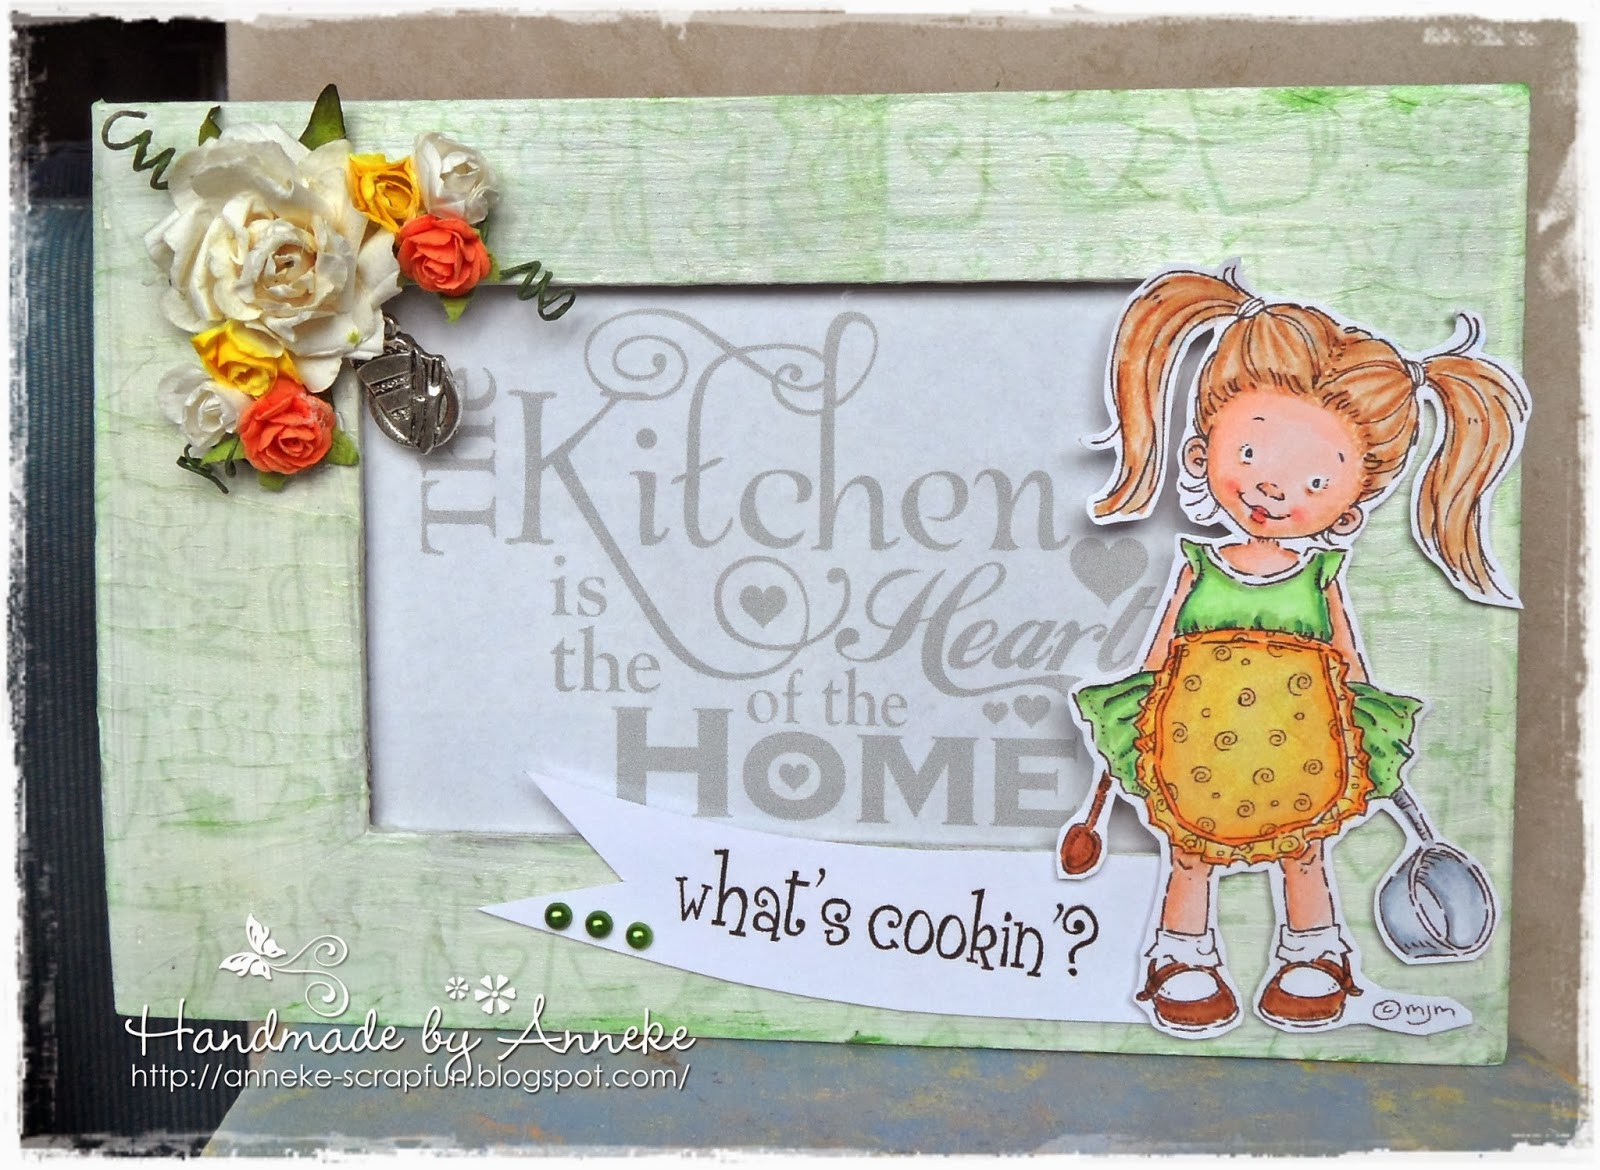 http://anneke-scrapfun.blogspot.be/2014/02/just-cooking.html